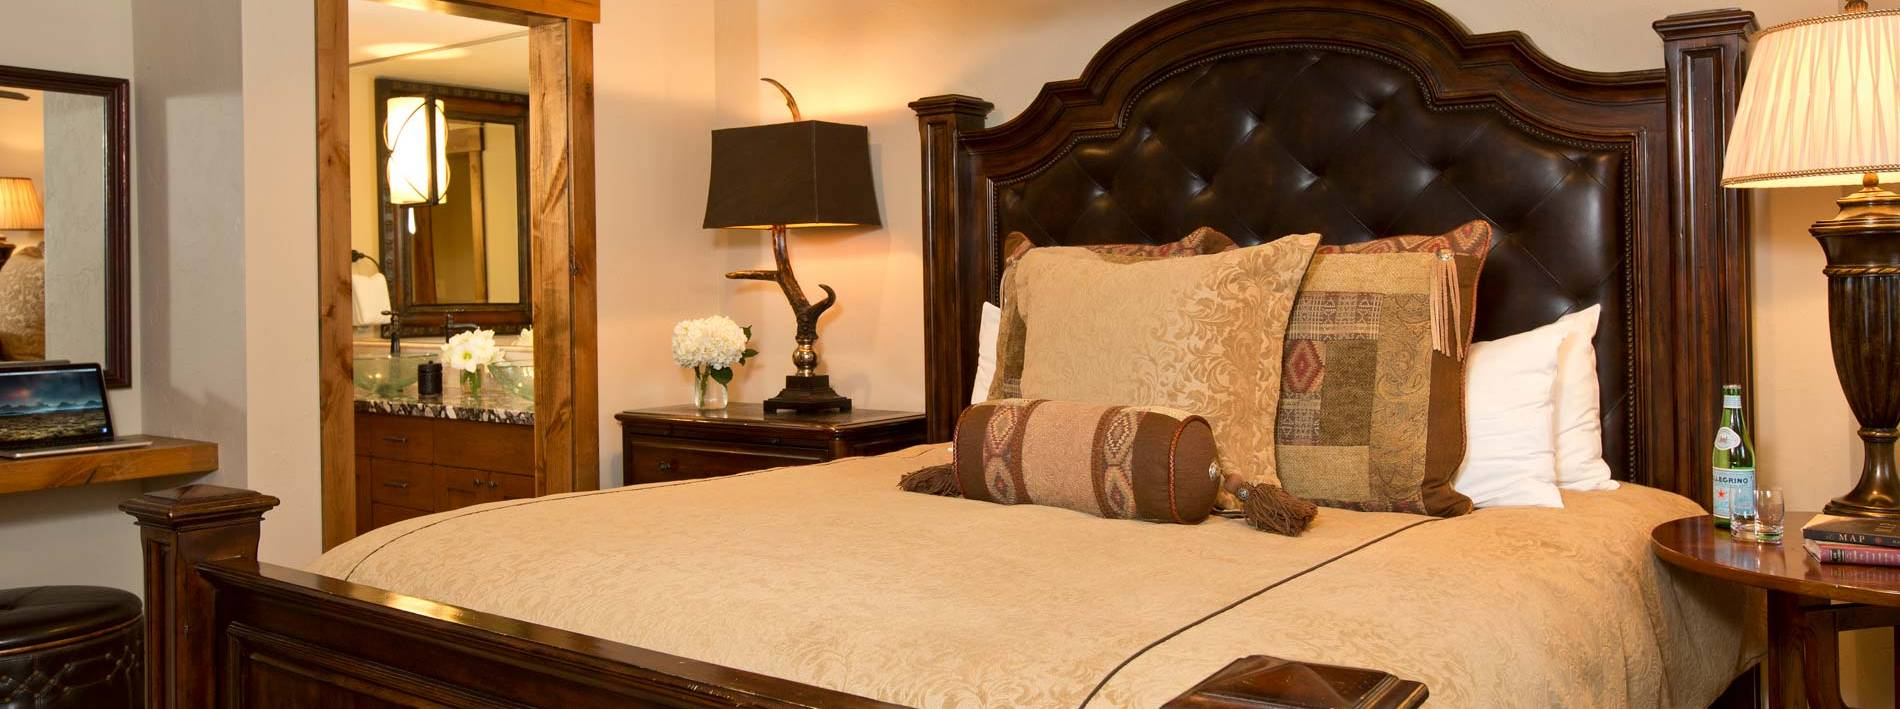 Spacious king bedroom in the Blue Moose Lodge in Jackson Hole